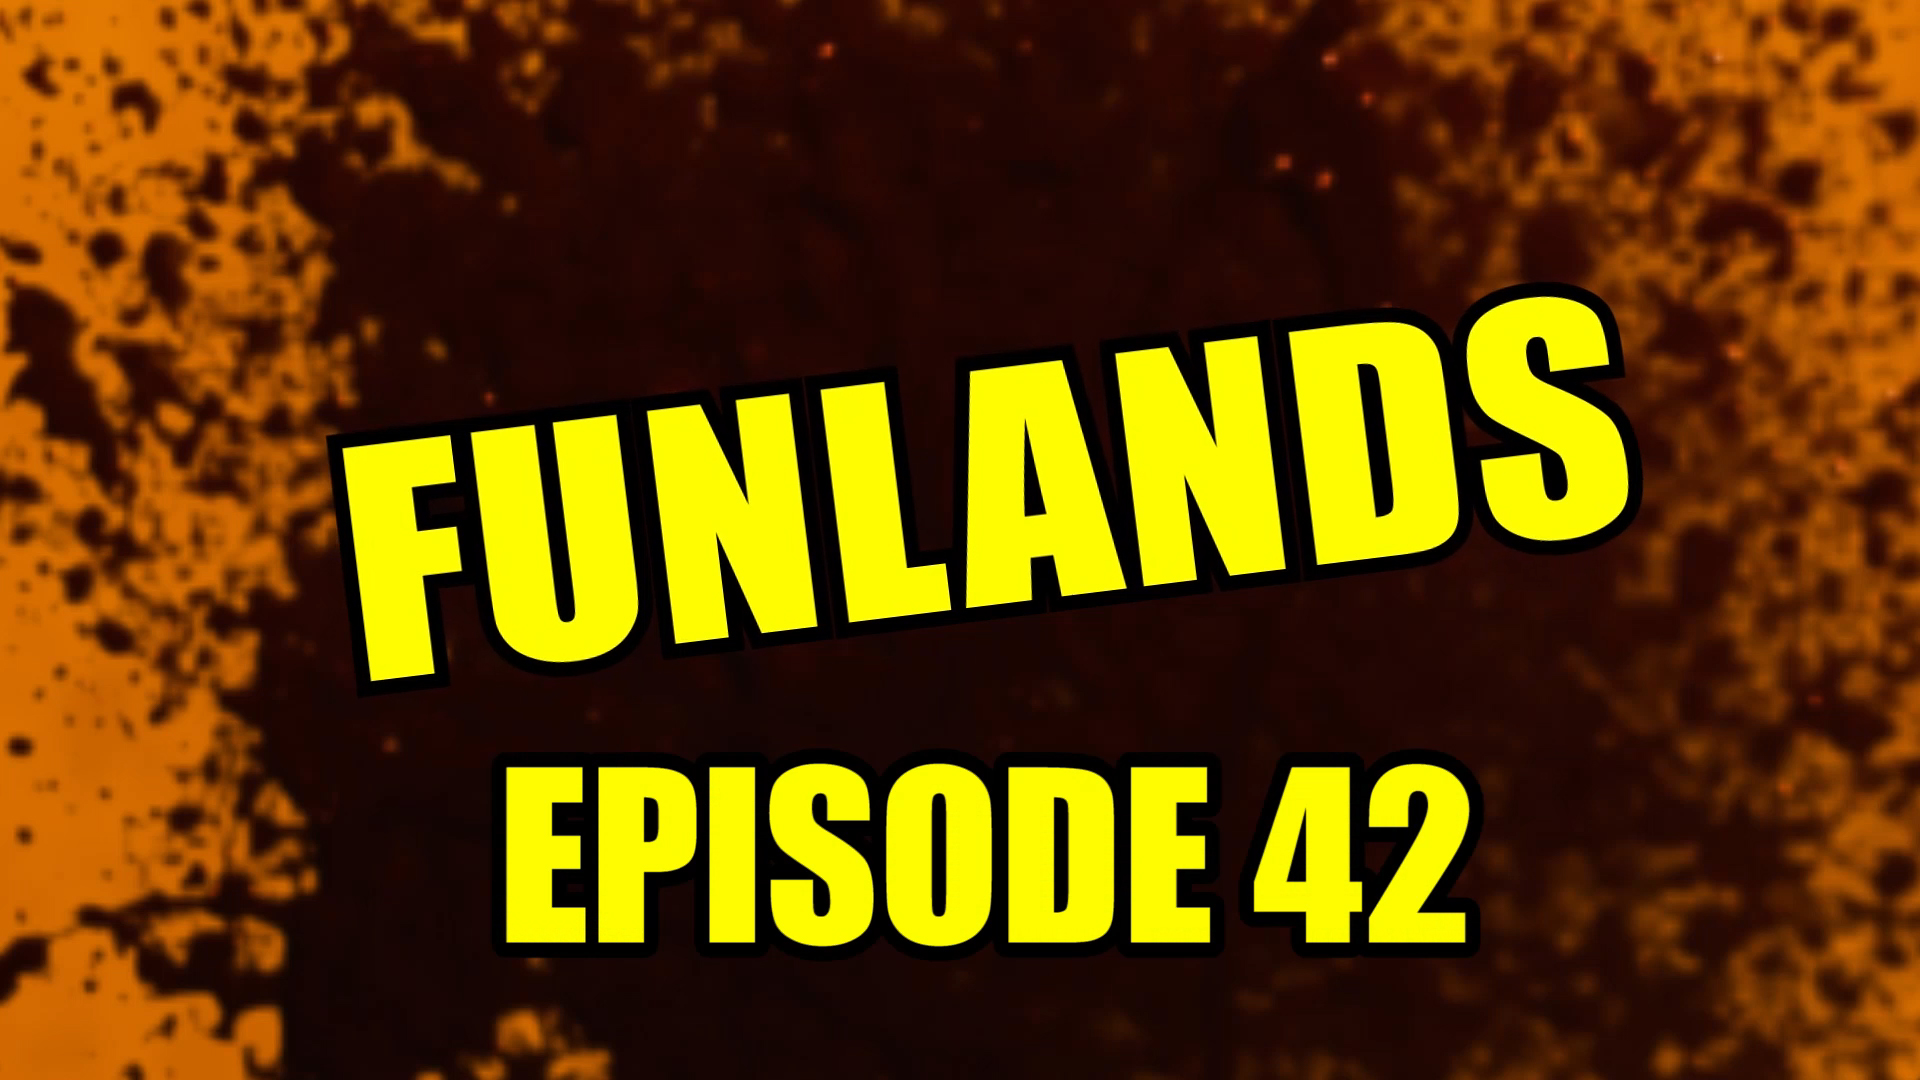 Funlands Episode 42.jpg